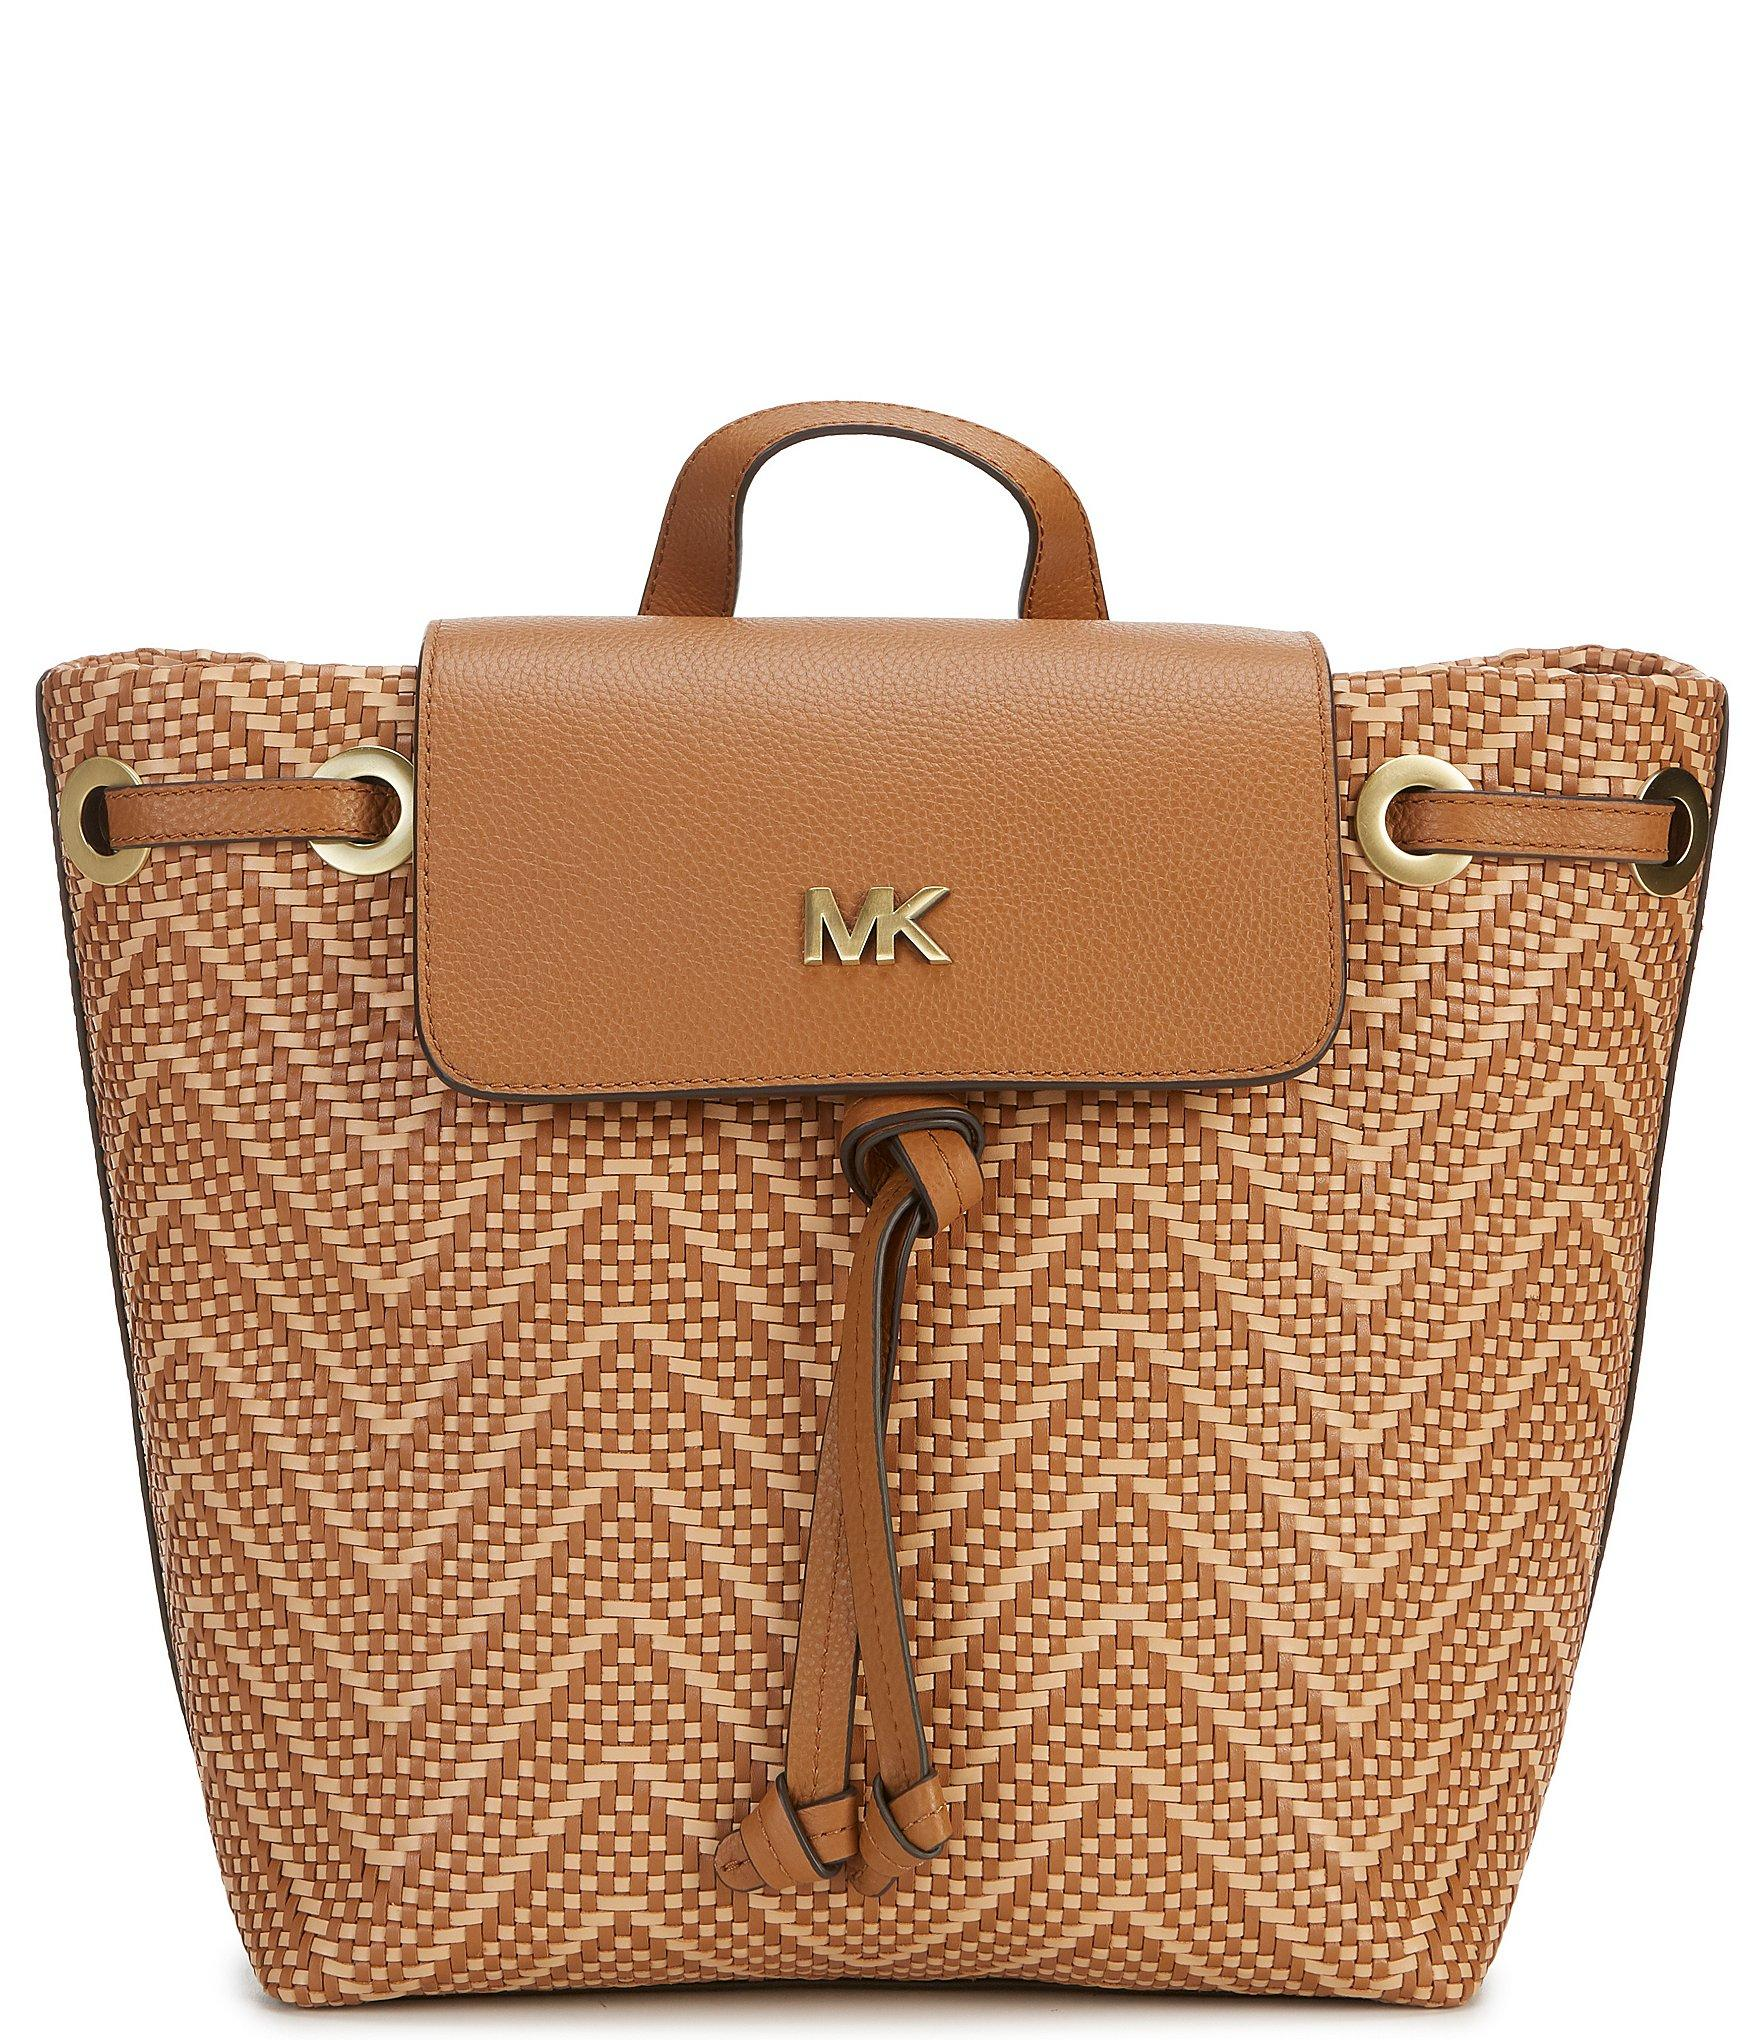 8b16541b7e82 Michael Kors - Multicolor Junie Medium Colorblock Flap Backpack - Lyst.  View fullscreen